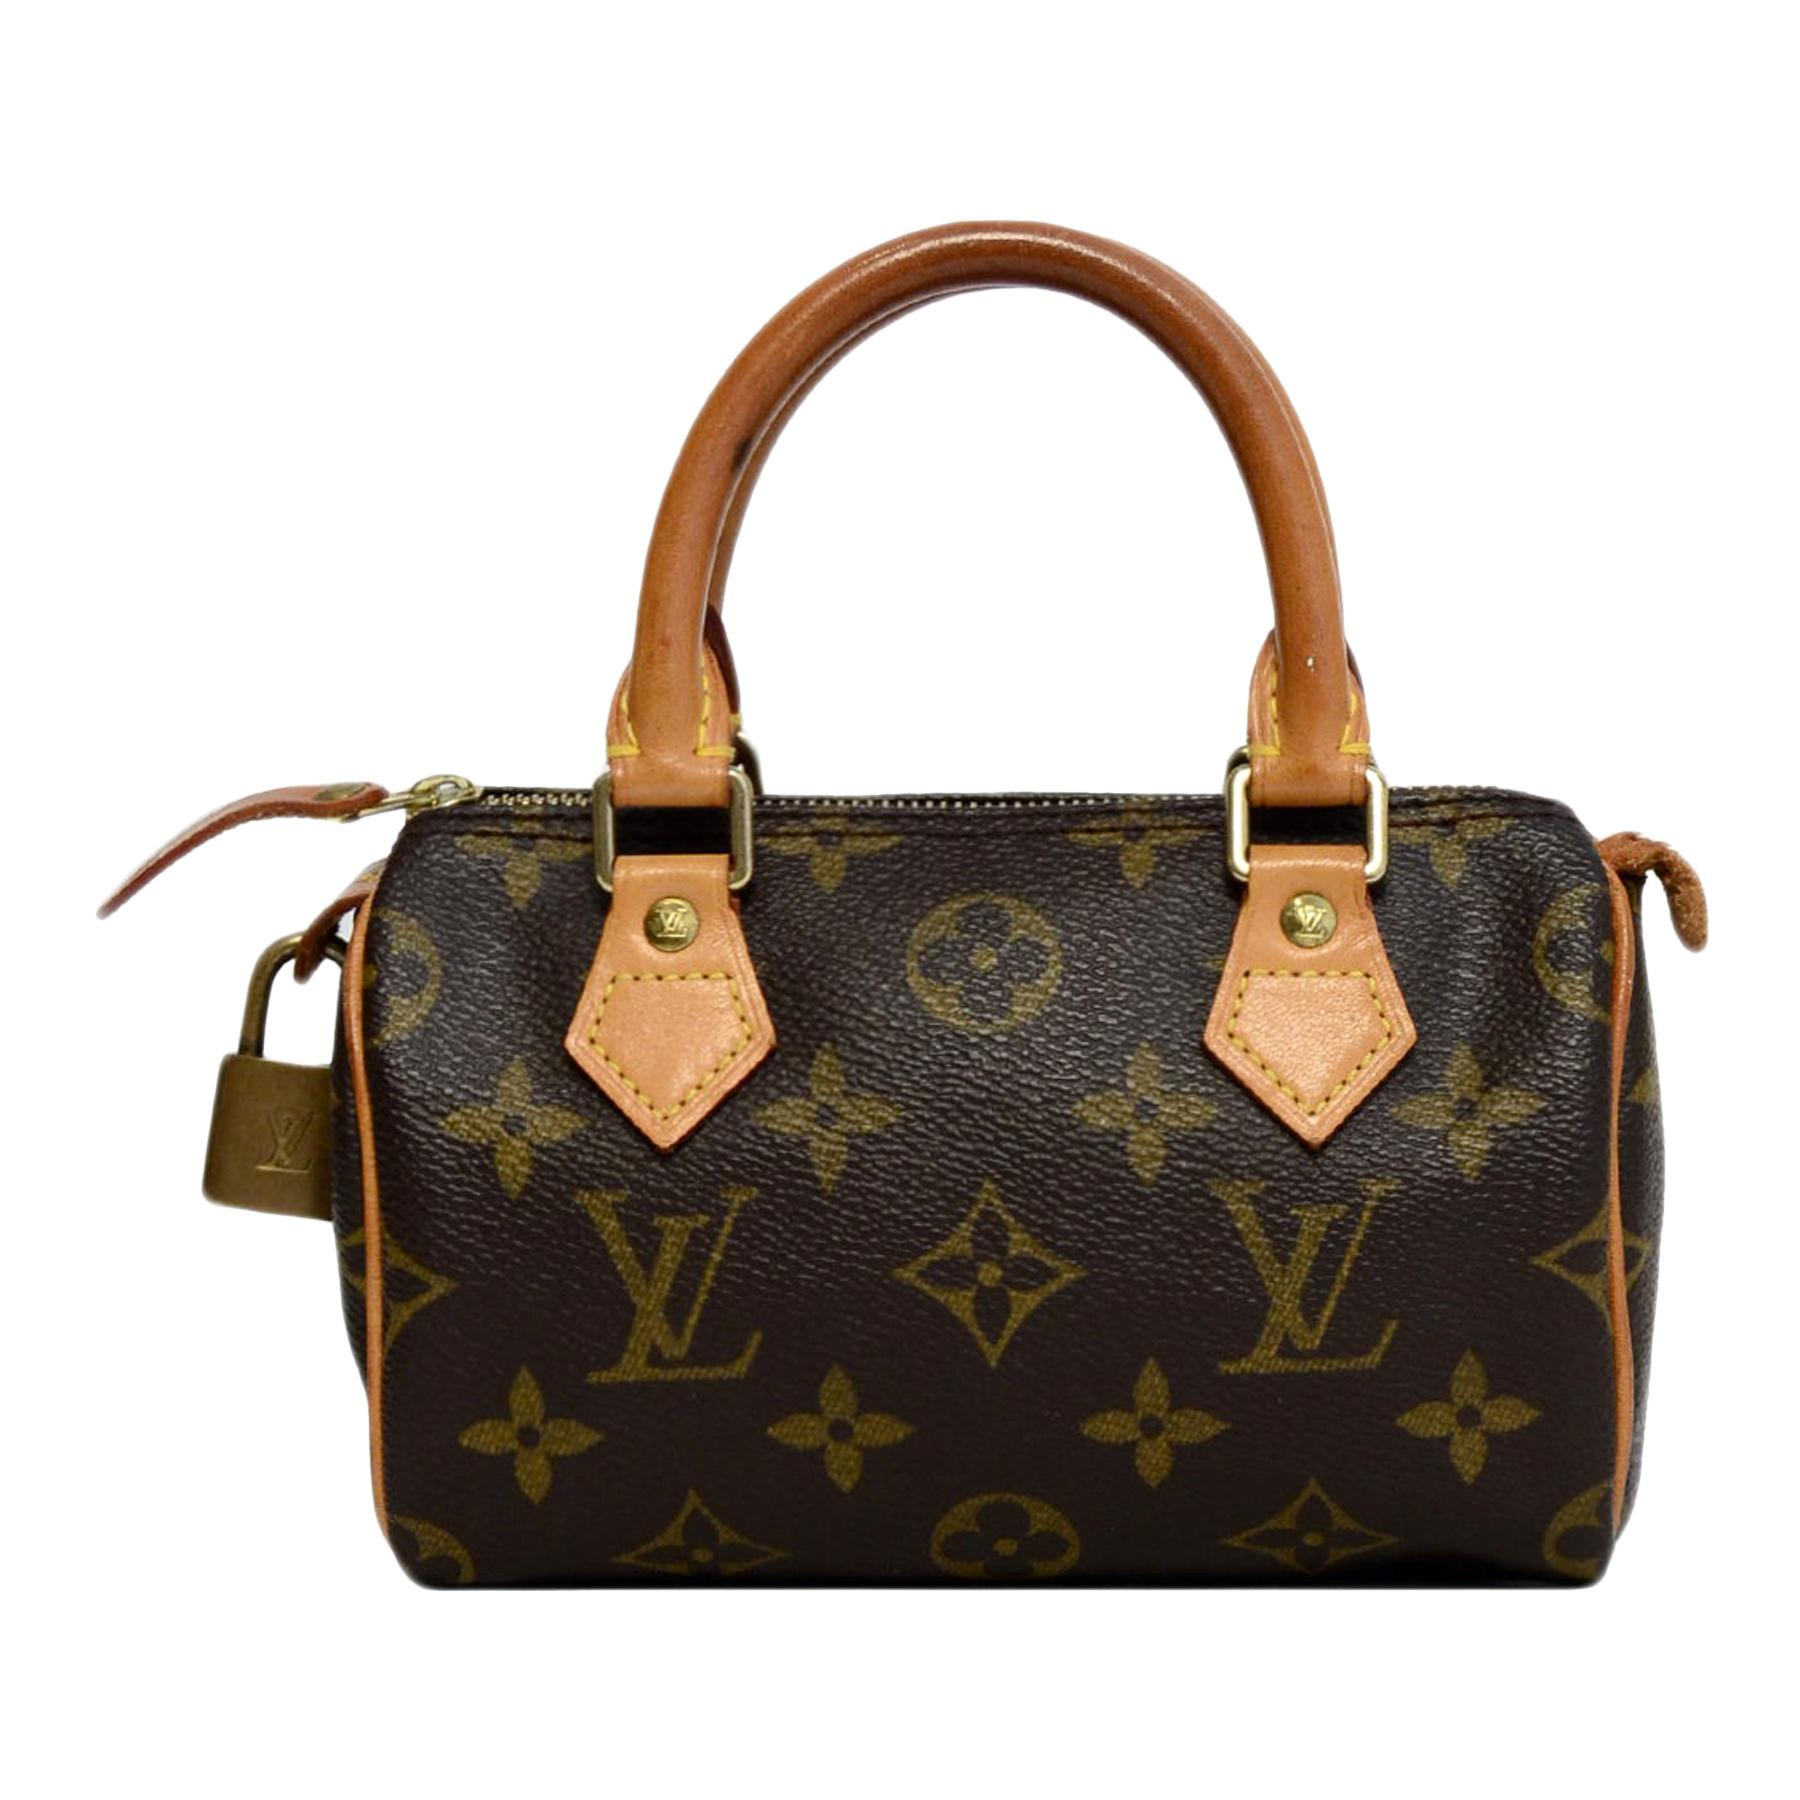 e4af21590ac52 Vintage Louis Vuitton Handbags and Purses - 3,346 For Sale at 1stdibs